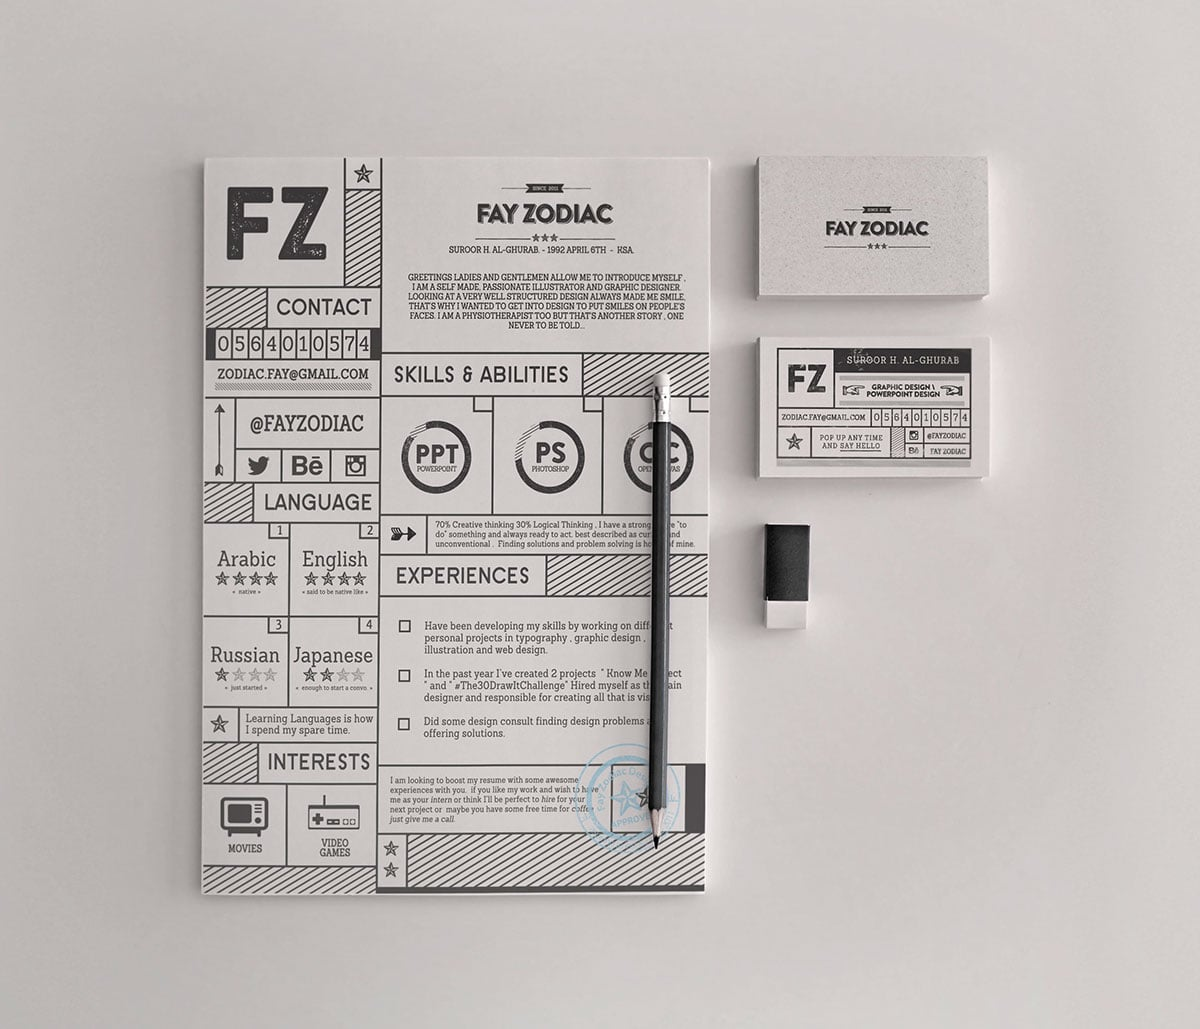 50+ Best Free Resume Templates in 2020 - bf1fe922623583.56315c6cce26c